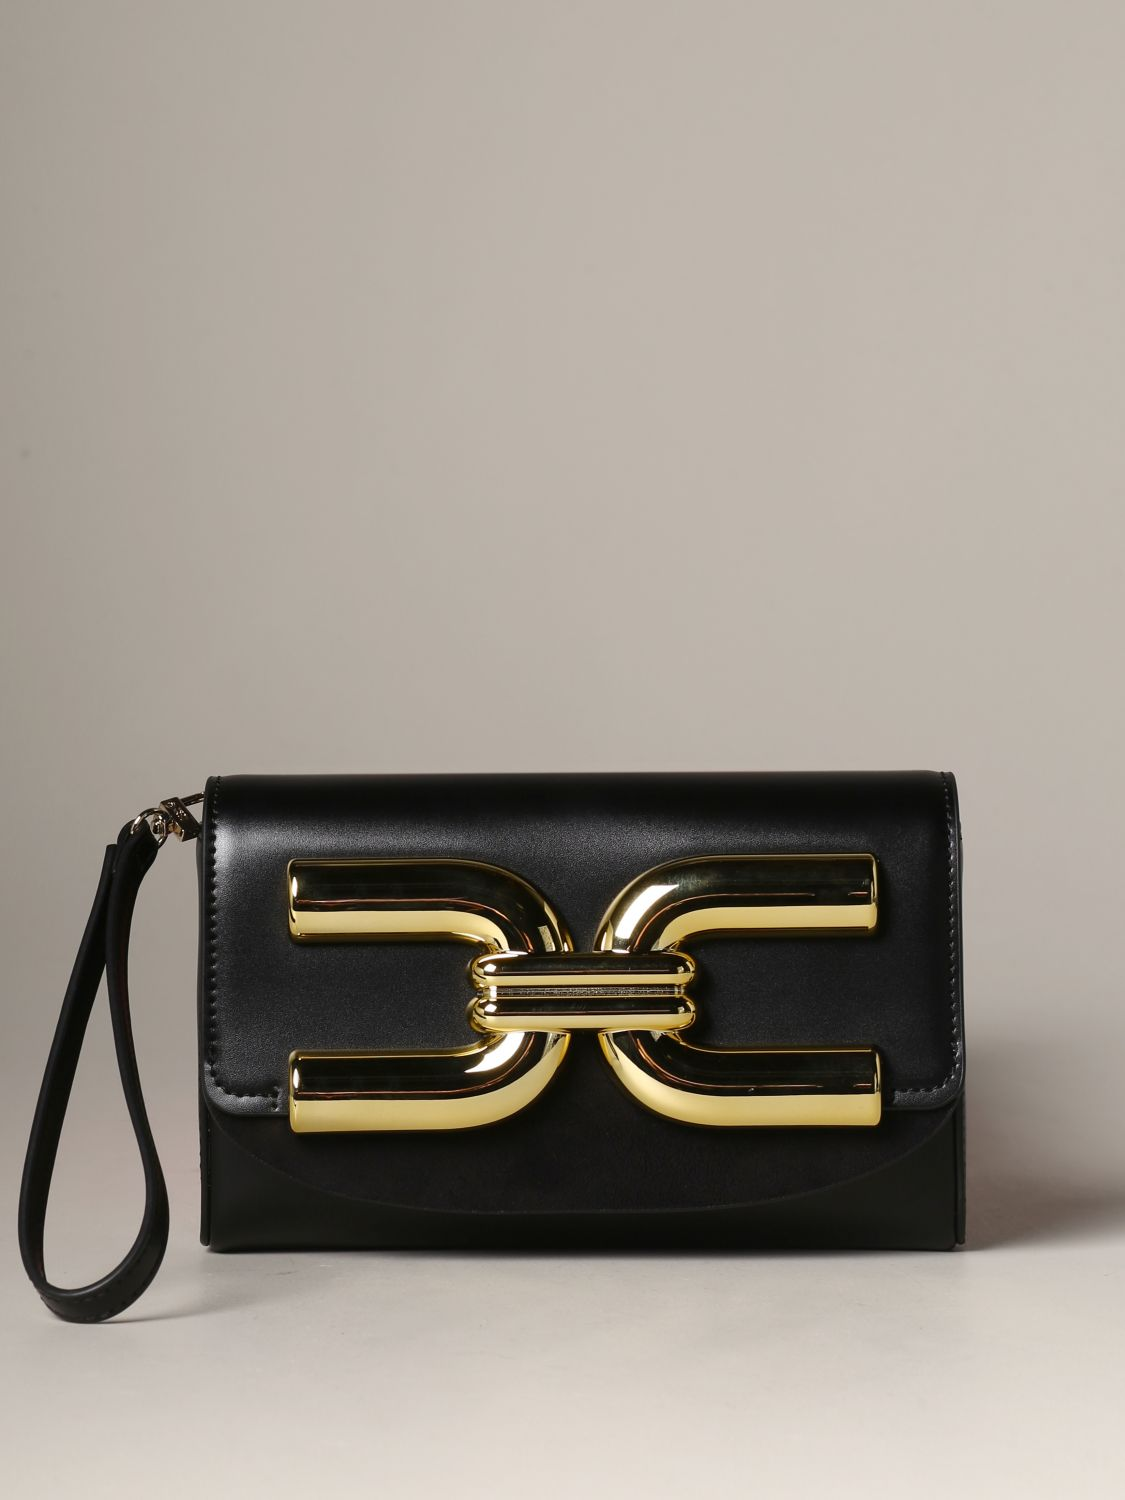 Elisabetta Franchi leather clutch with logo black 1